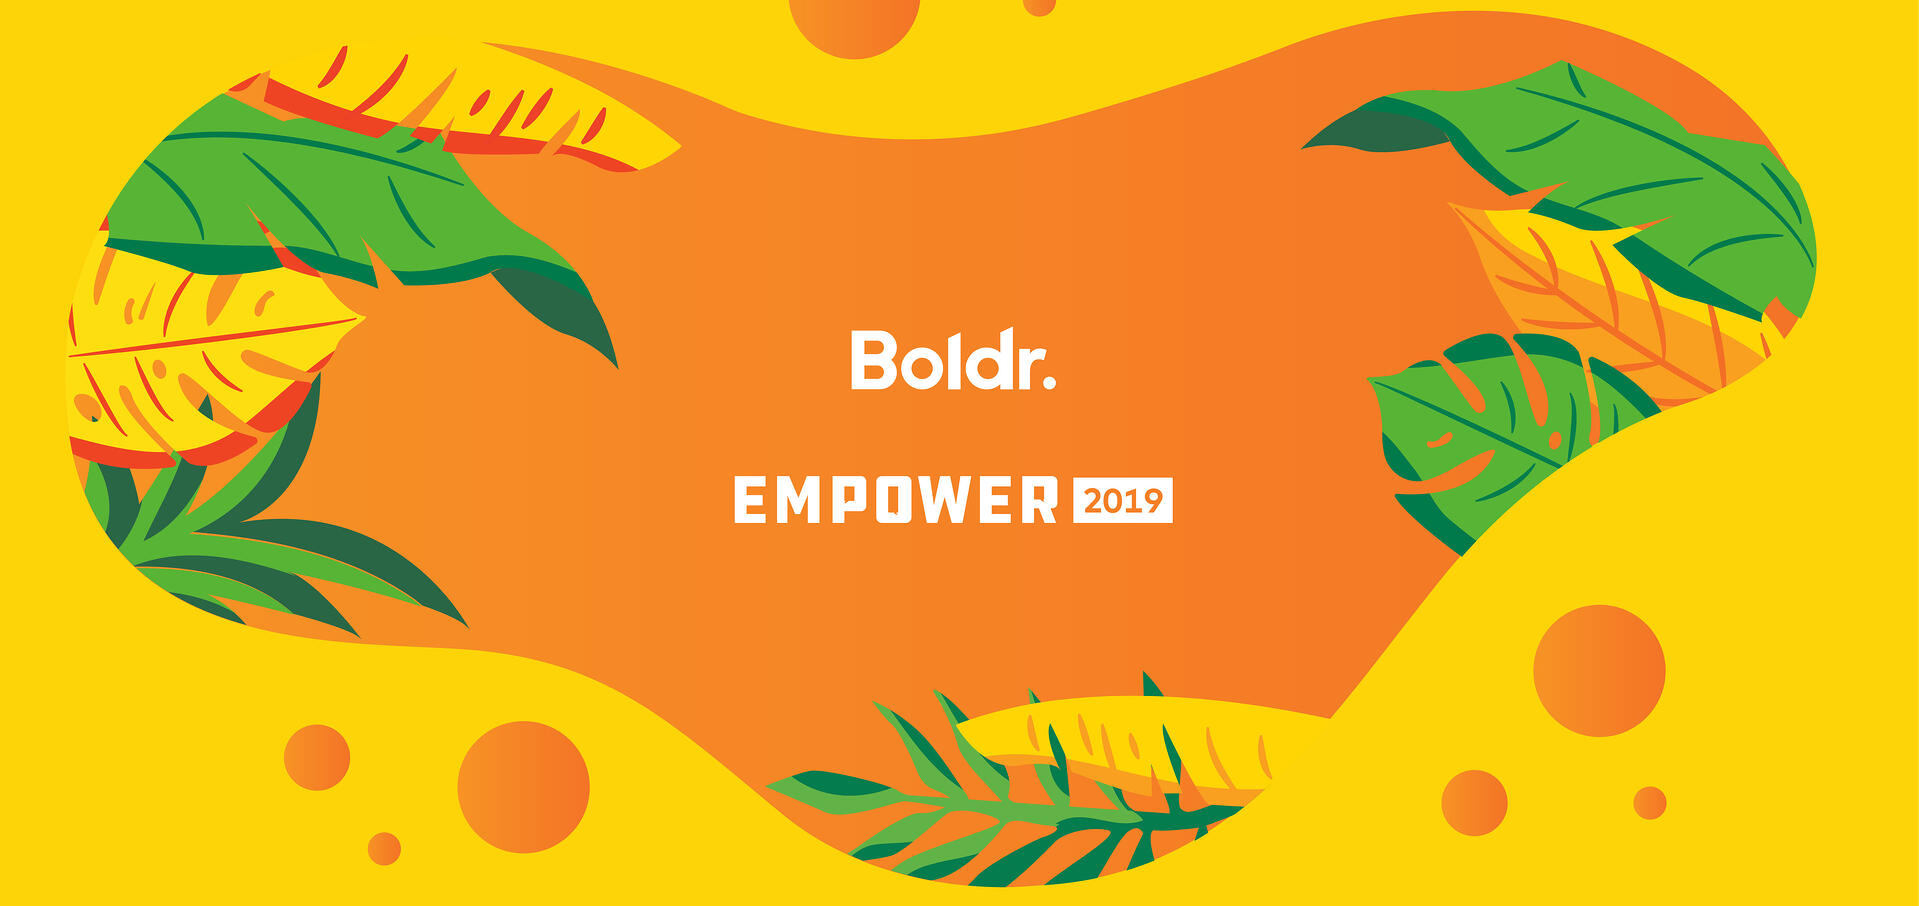 Empower 2019: Inspire, Support, and Enable